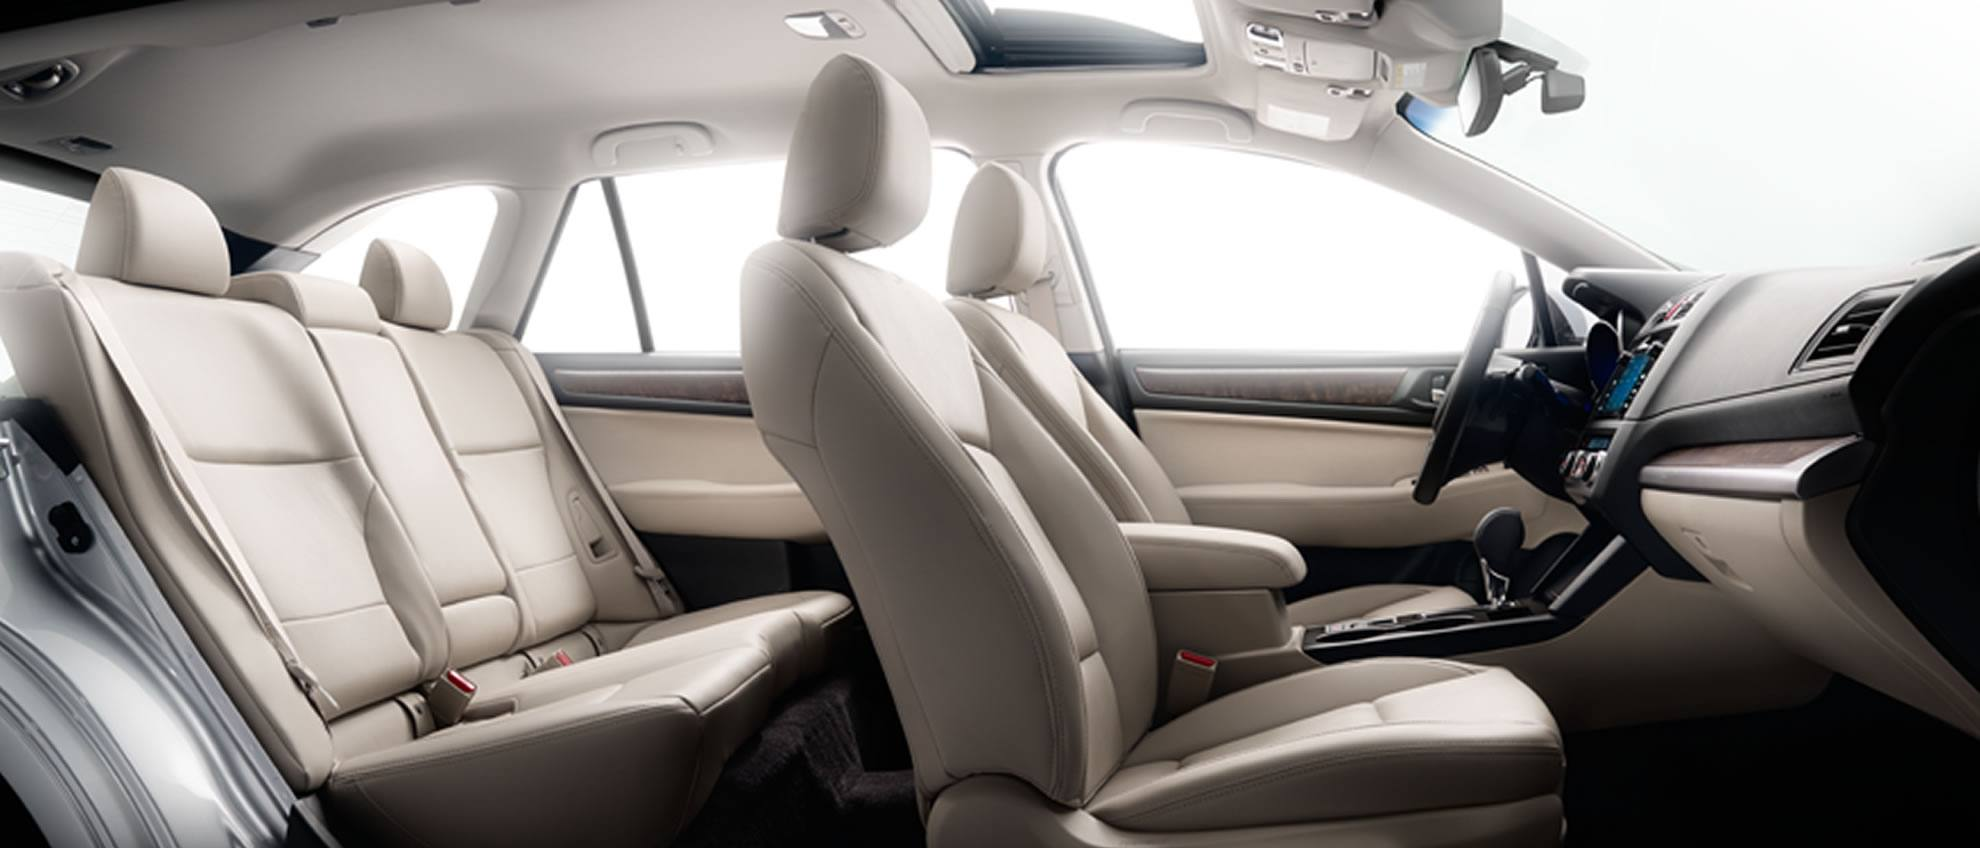 2017_Outback_Interior_Comfort